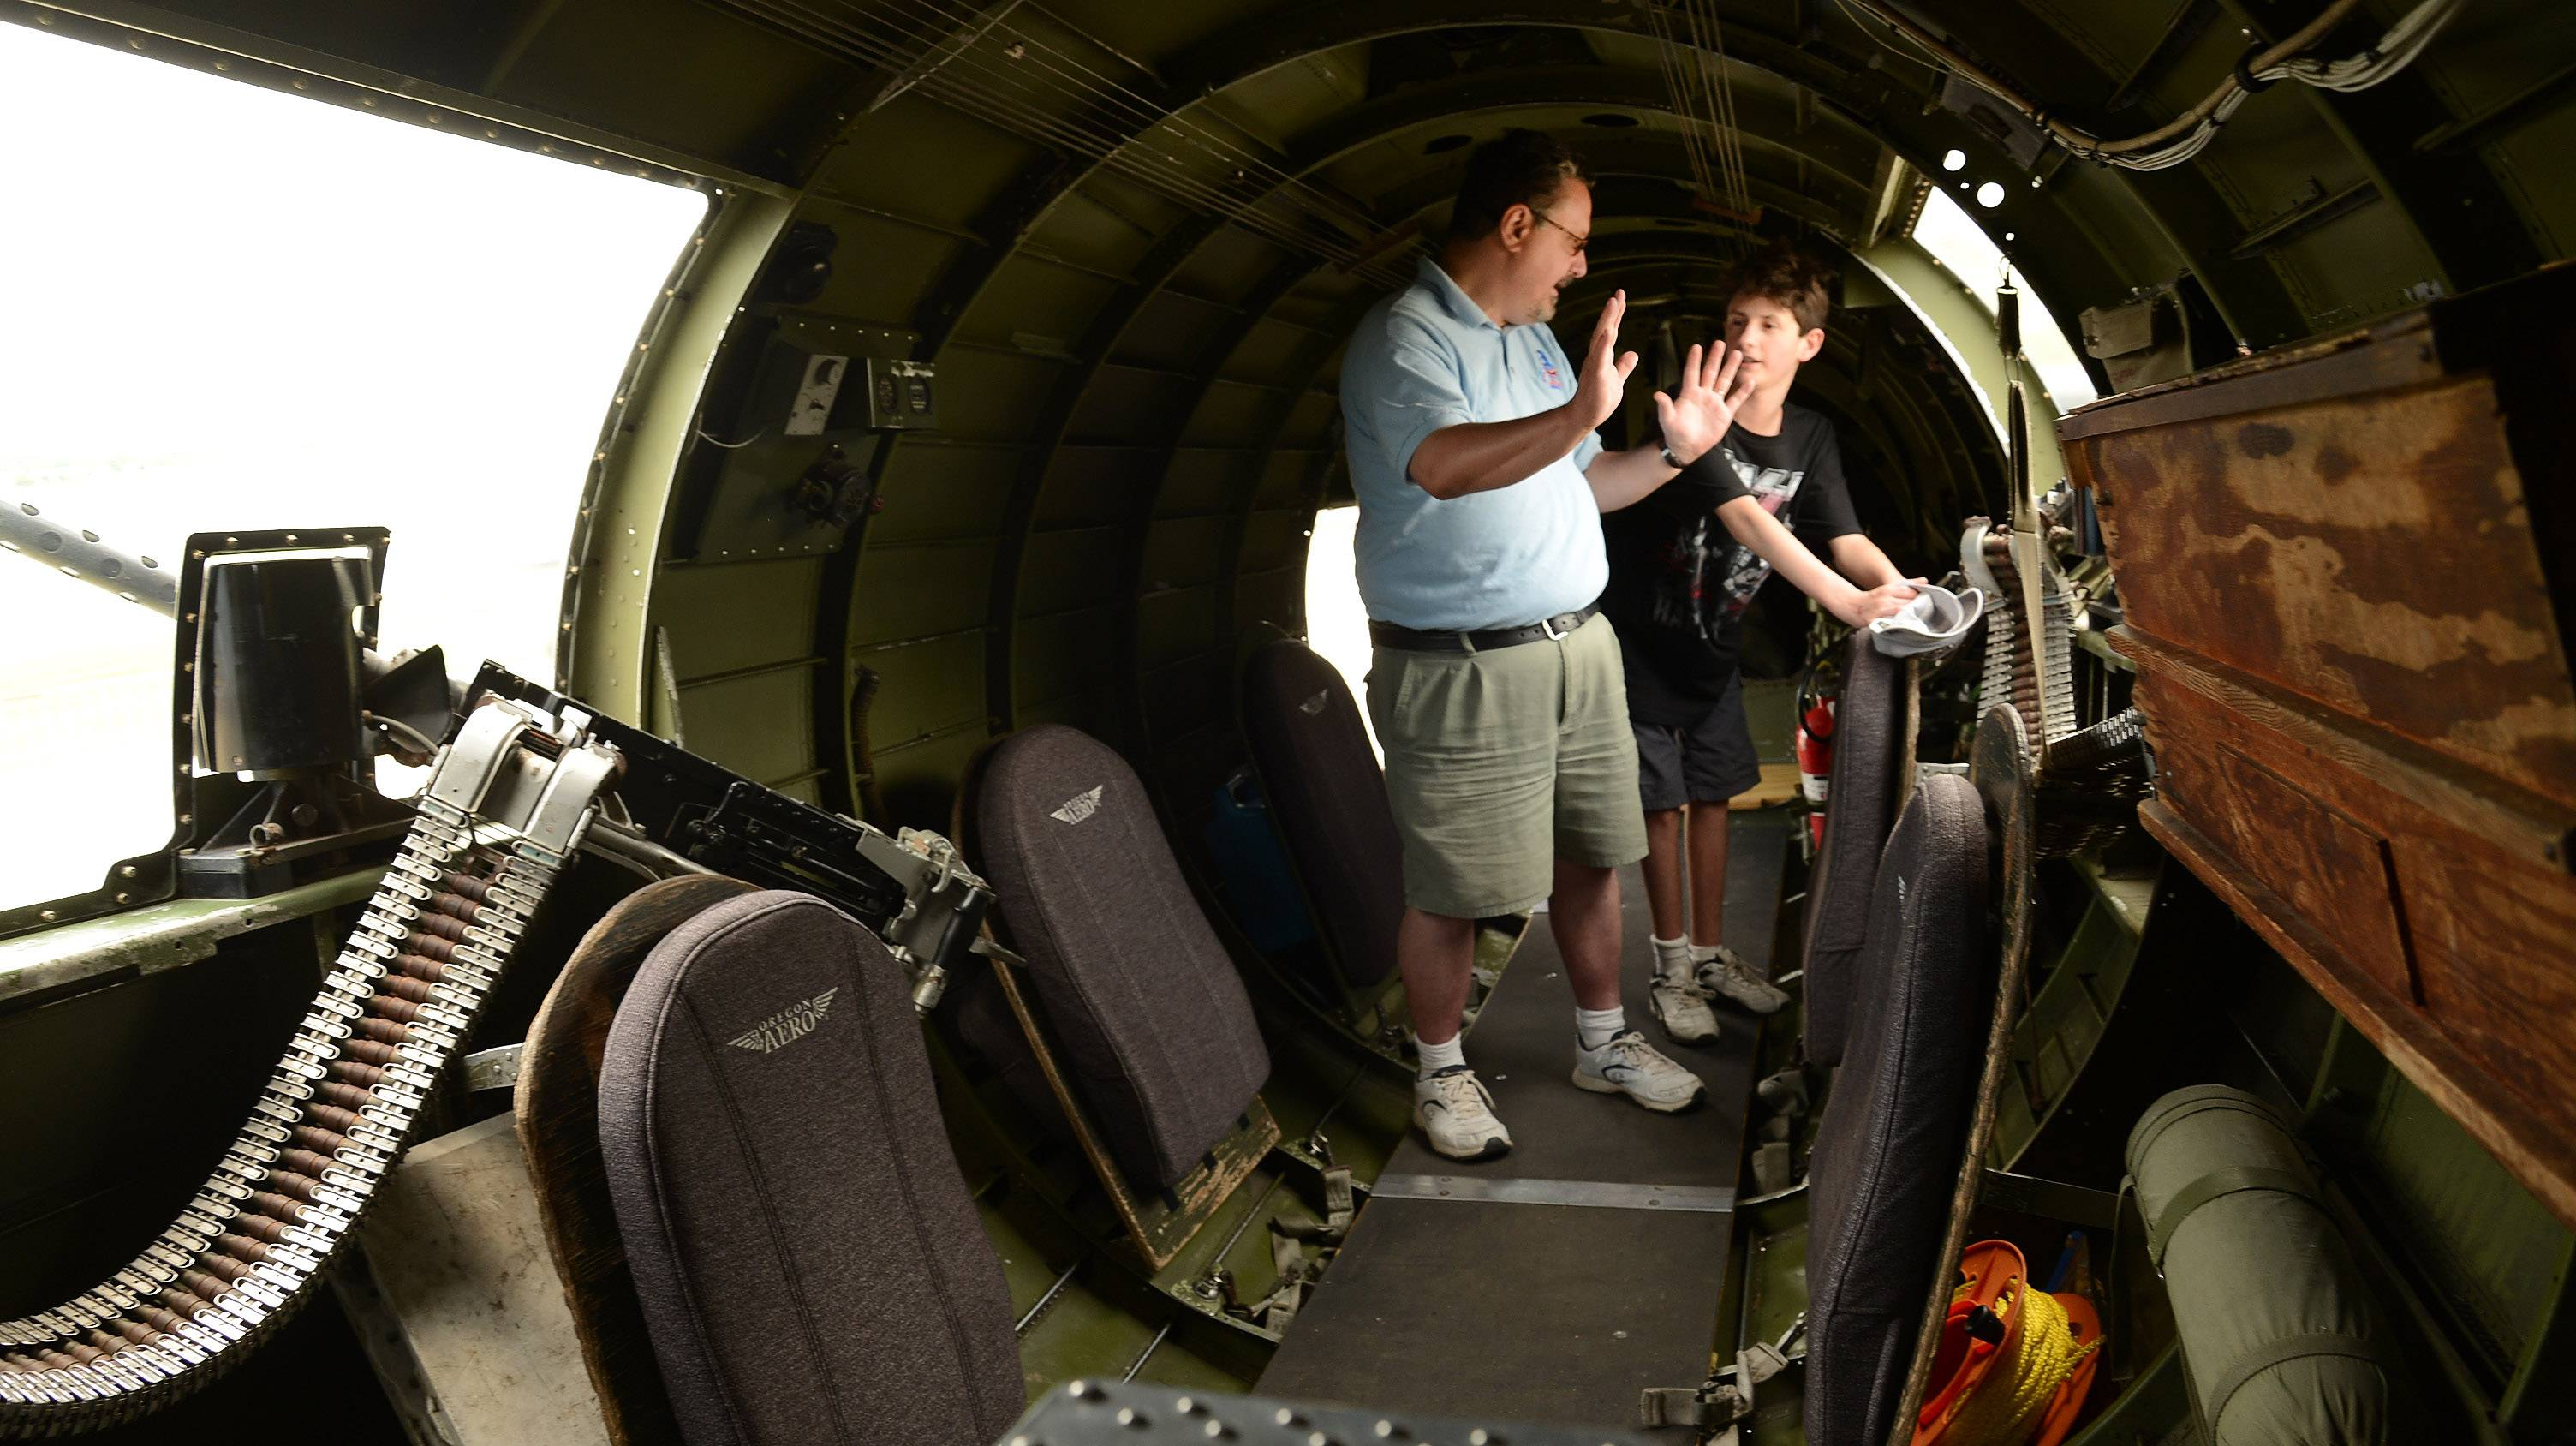 Mark Farina, of Brookfield, shows his son Louis the inside of a B-17G Flying Fortress that Louis's grandfather, Casey Paulinski, co-piloted during World War II during the Collings Foundation's Wings of Freedom Tour at Chicago Executive Airport in Wheeling.